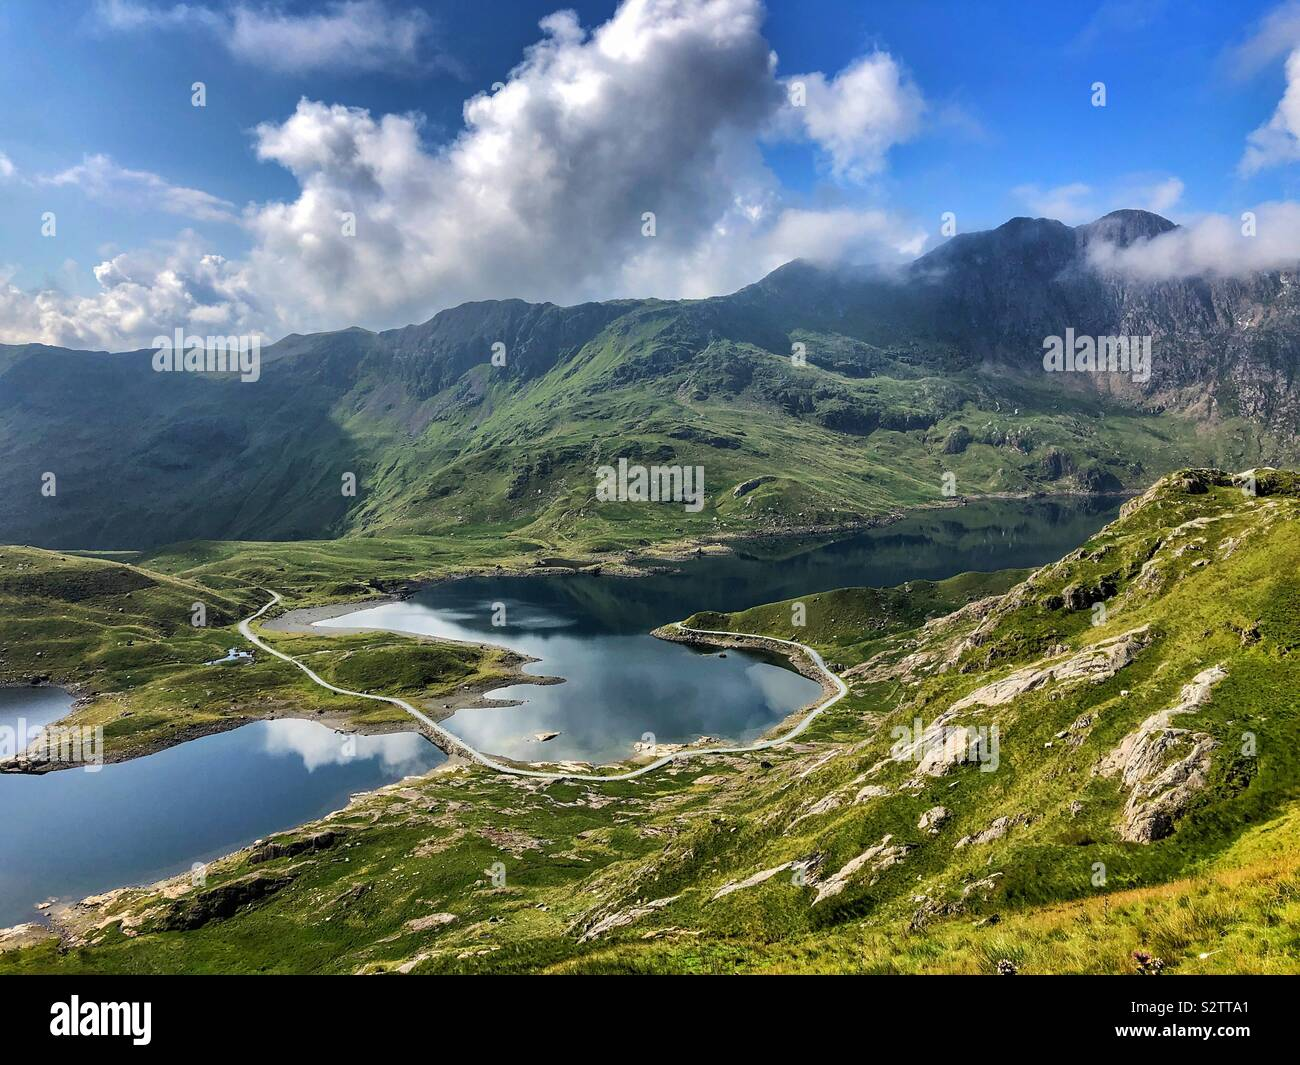 Llyn Llydaw, Snowdonia National Park, with the Miners track crossing it, August. Stock Photo